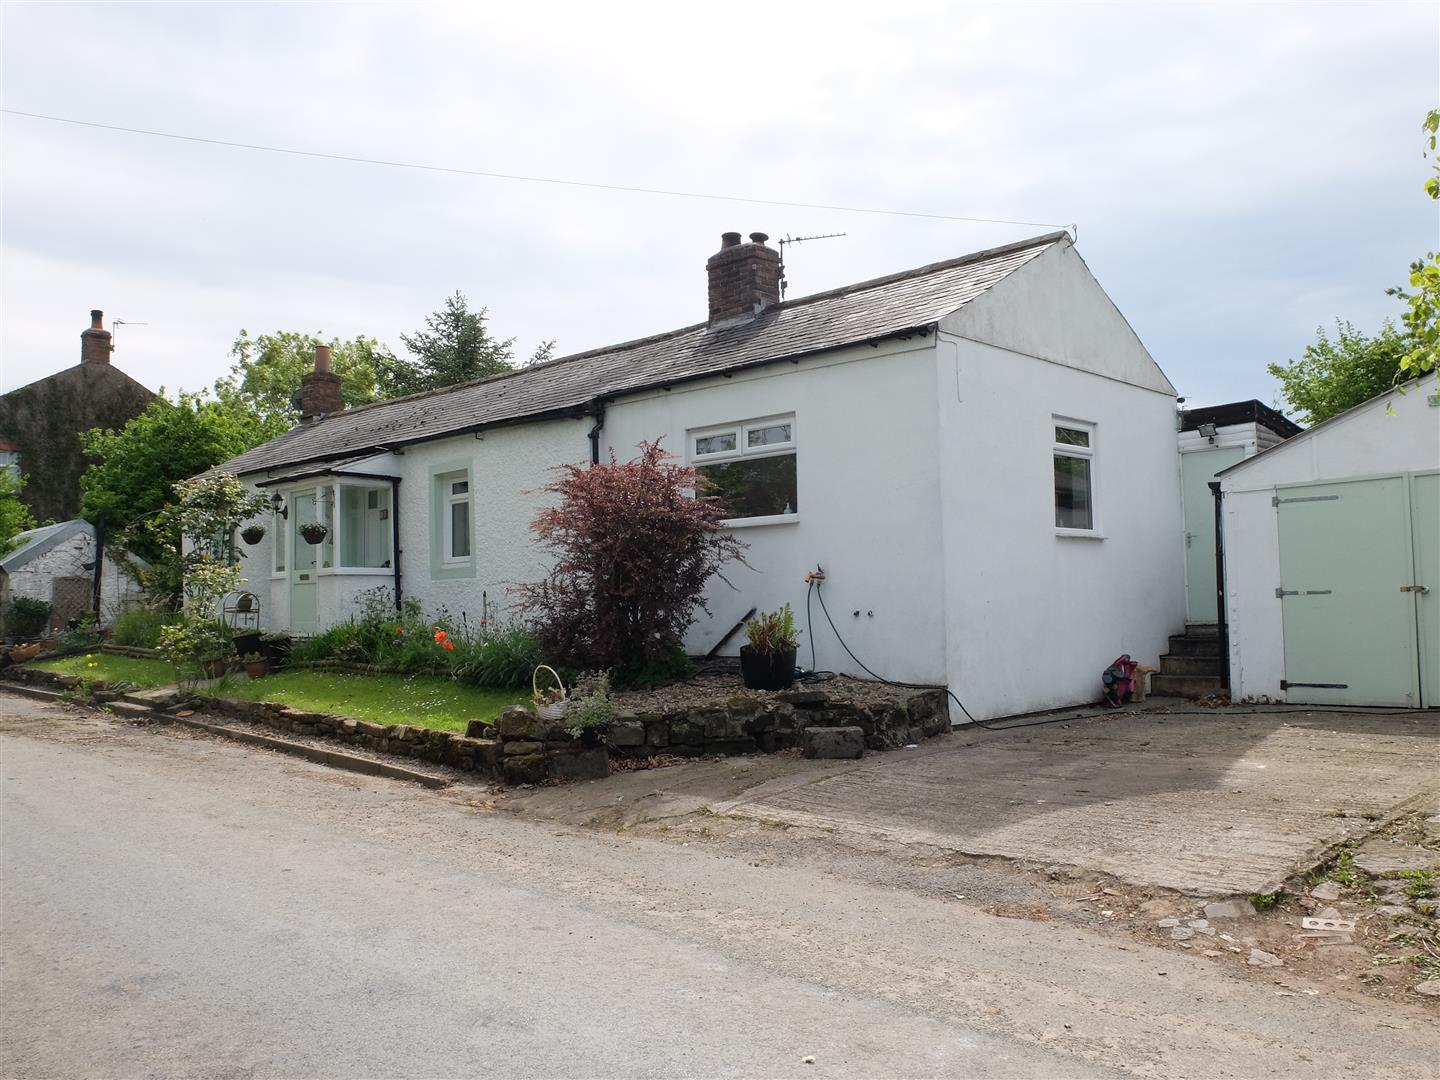 2 Bedrooms Cottage - Detached For Sale